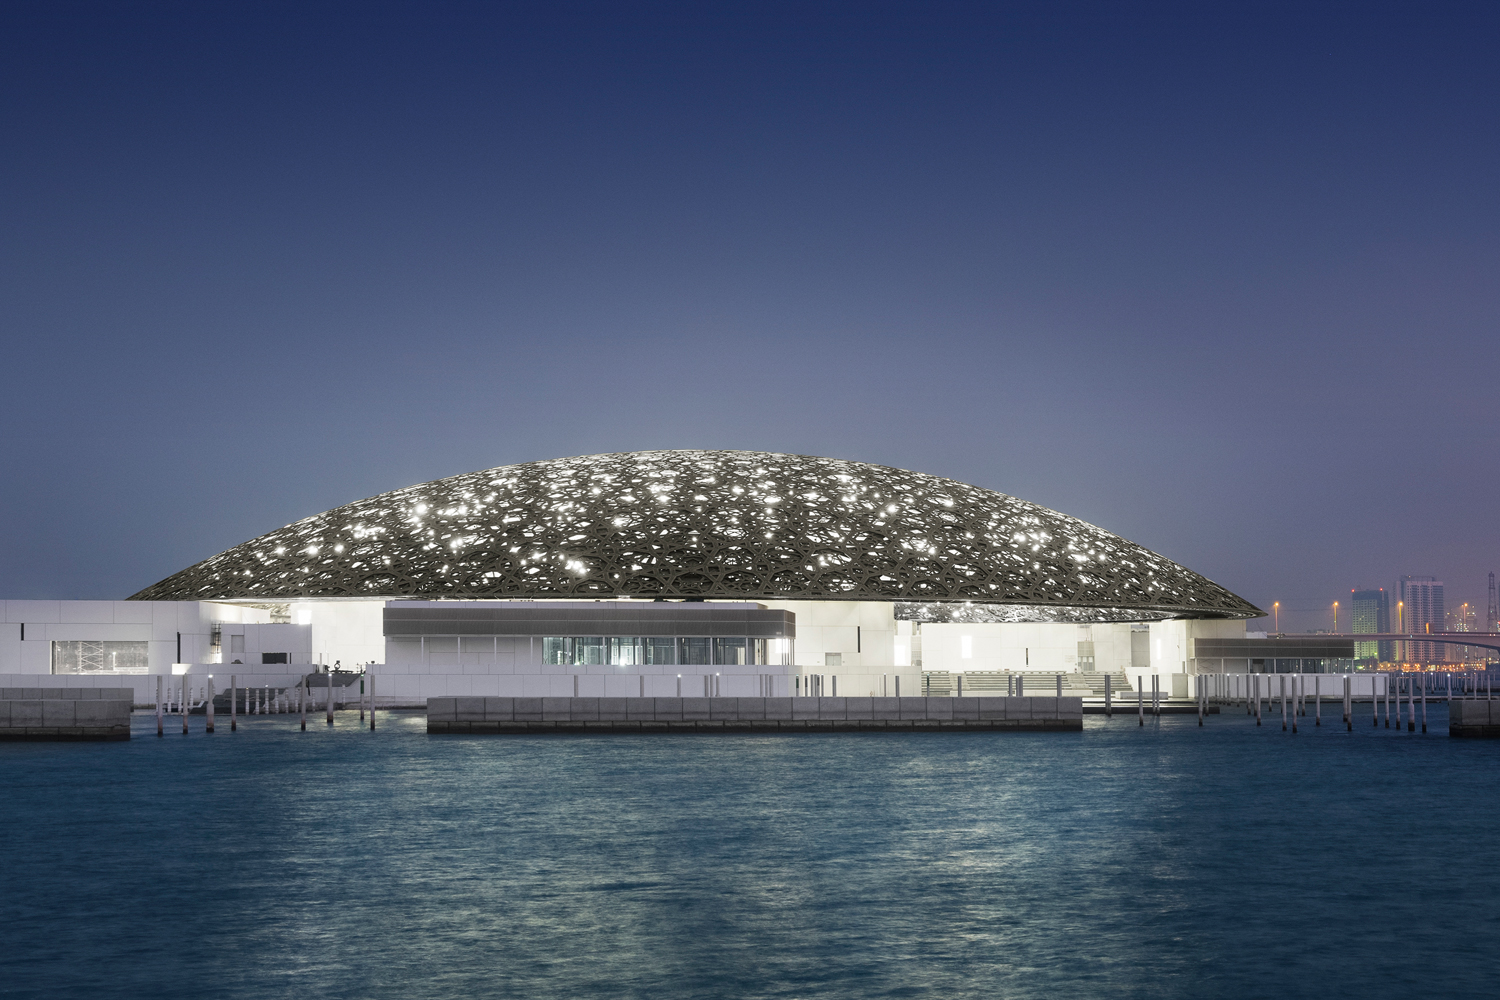 Louvre Abu Dhabi: Dome - BuroHappold Engineering